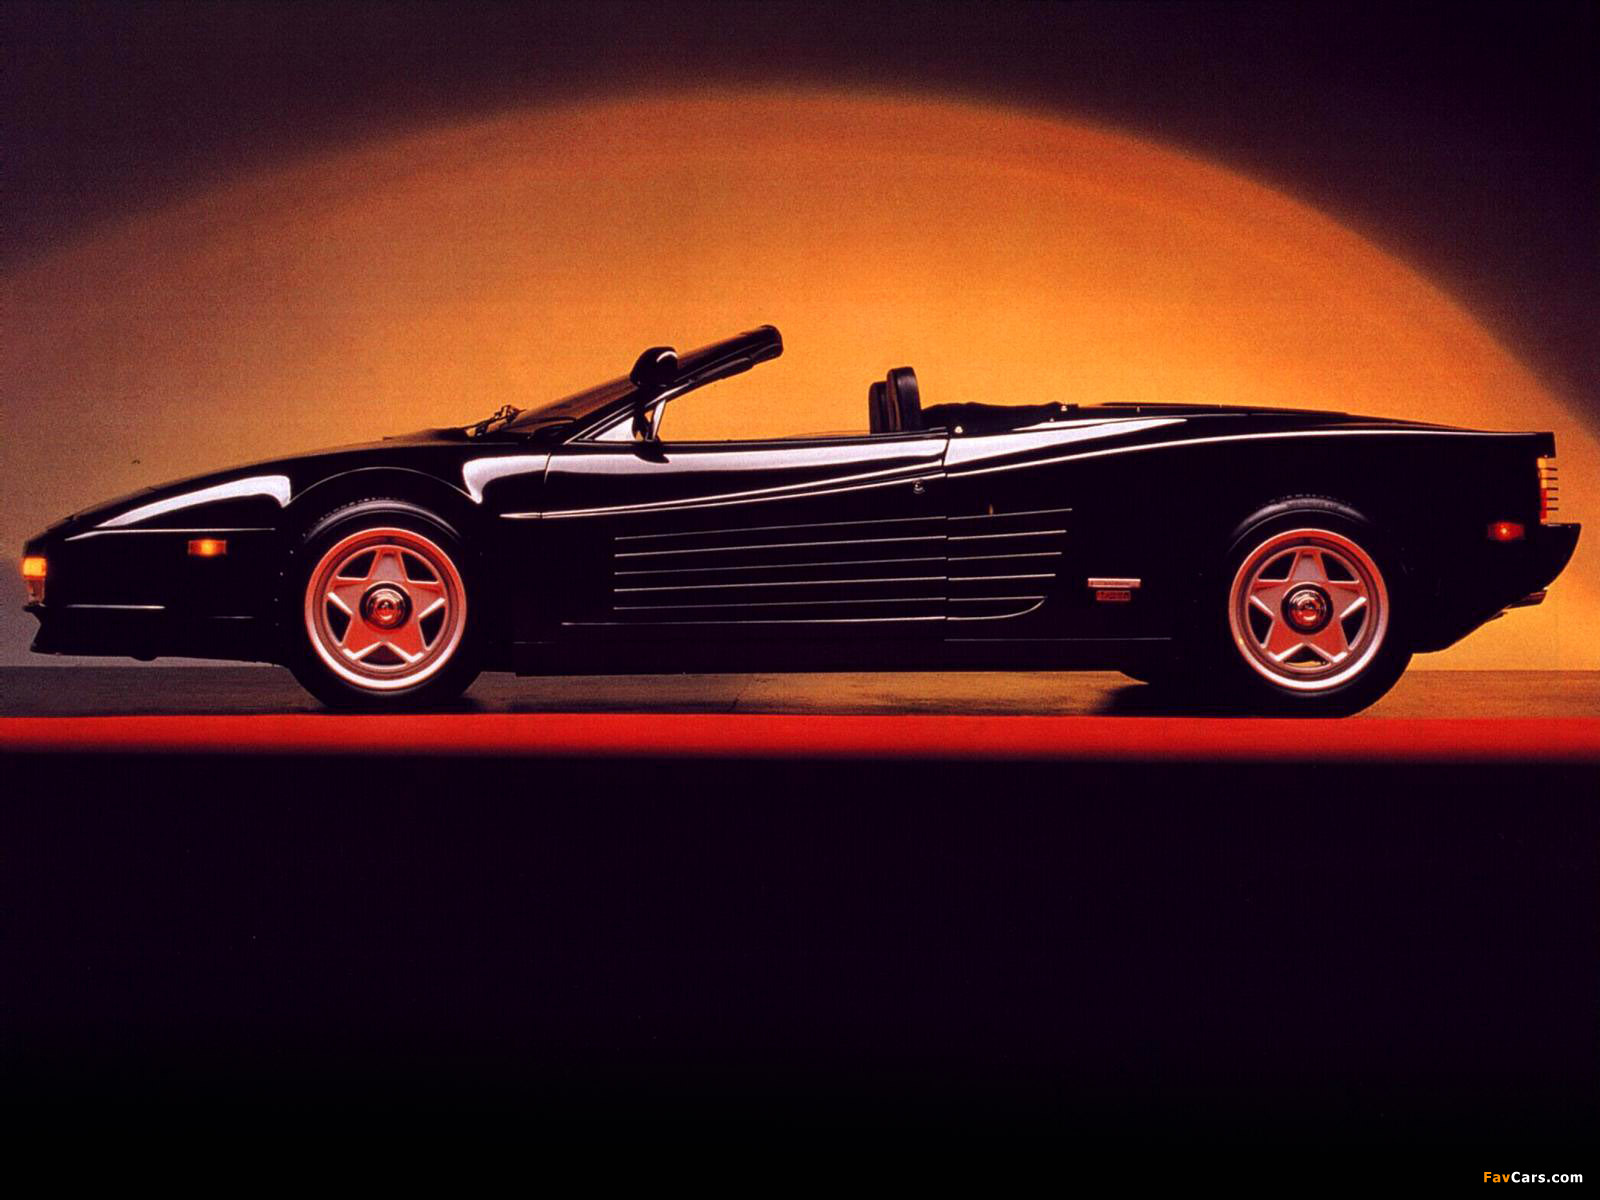 1985 ferrari testarossa wallpaper - photo #6